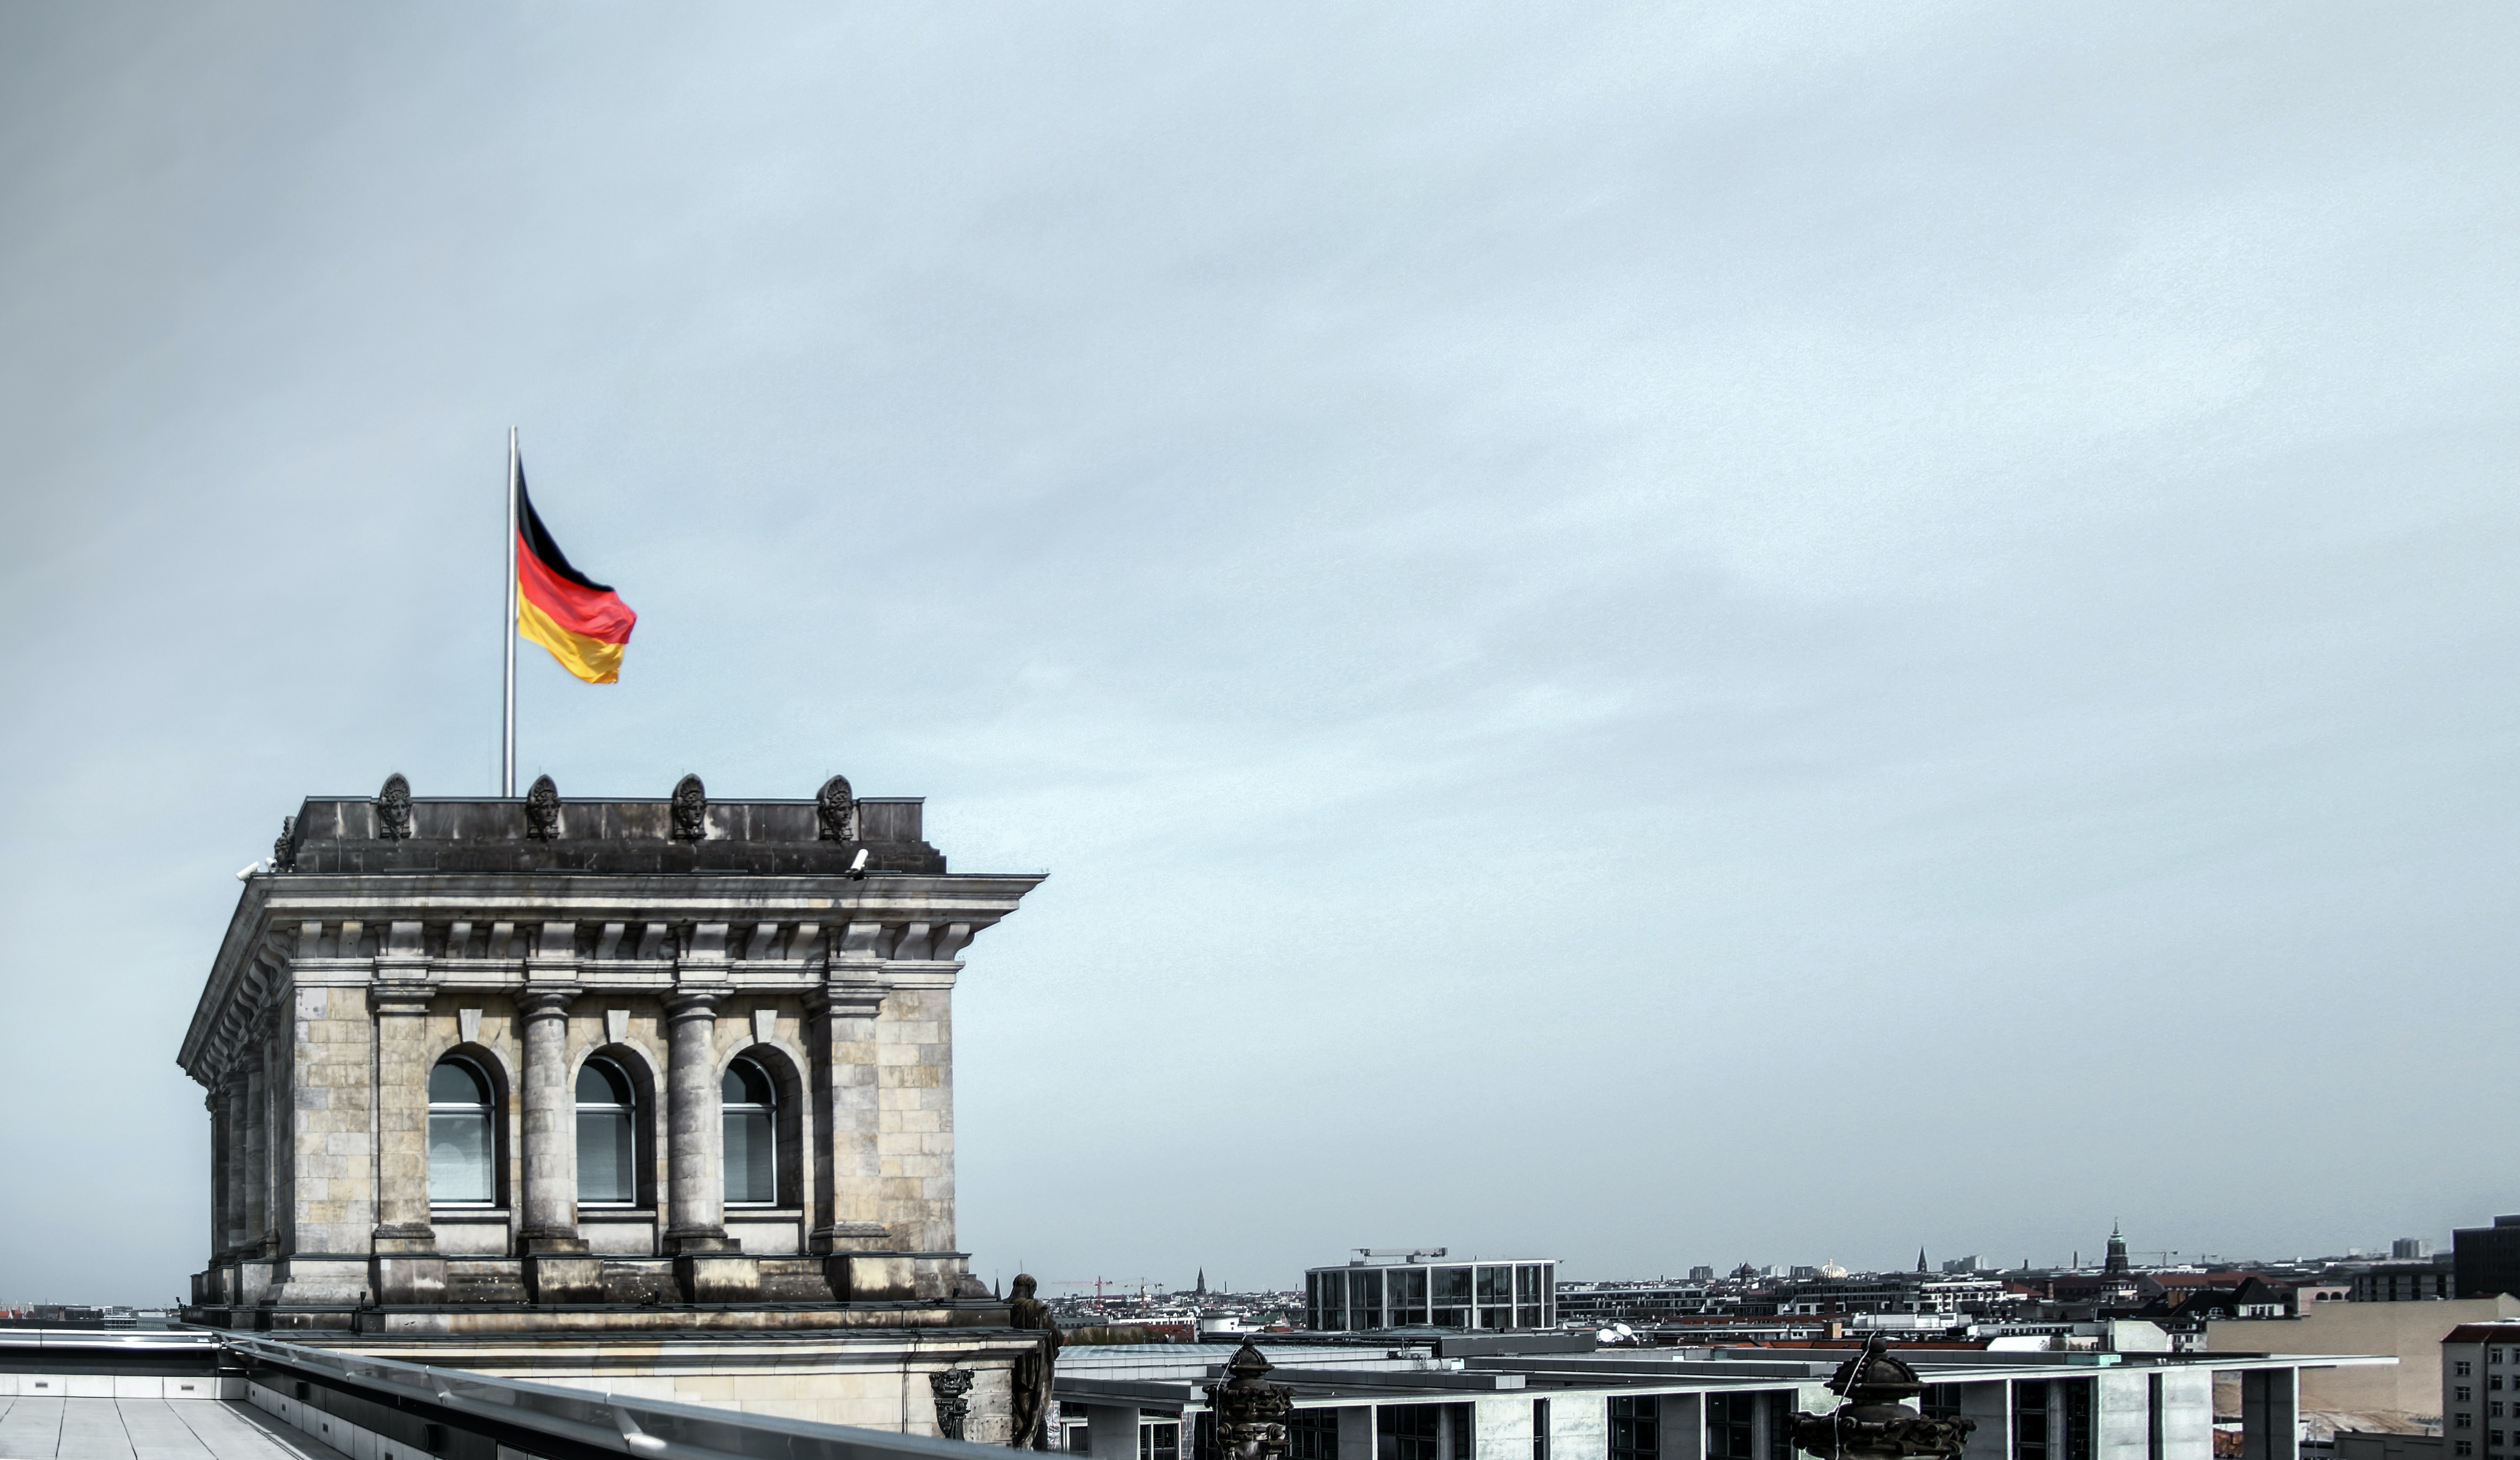 Photo on top of the German Bundestag building